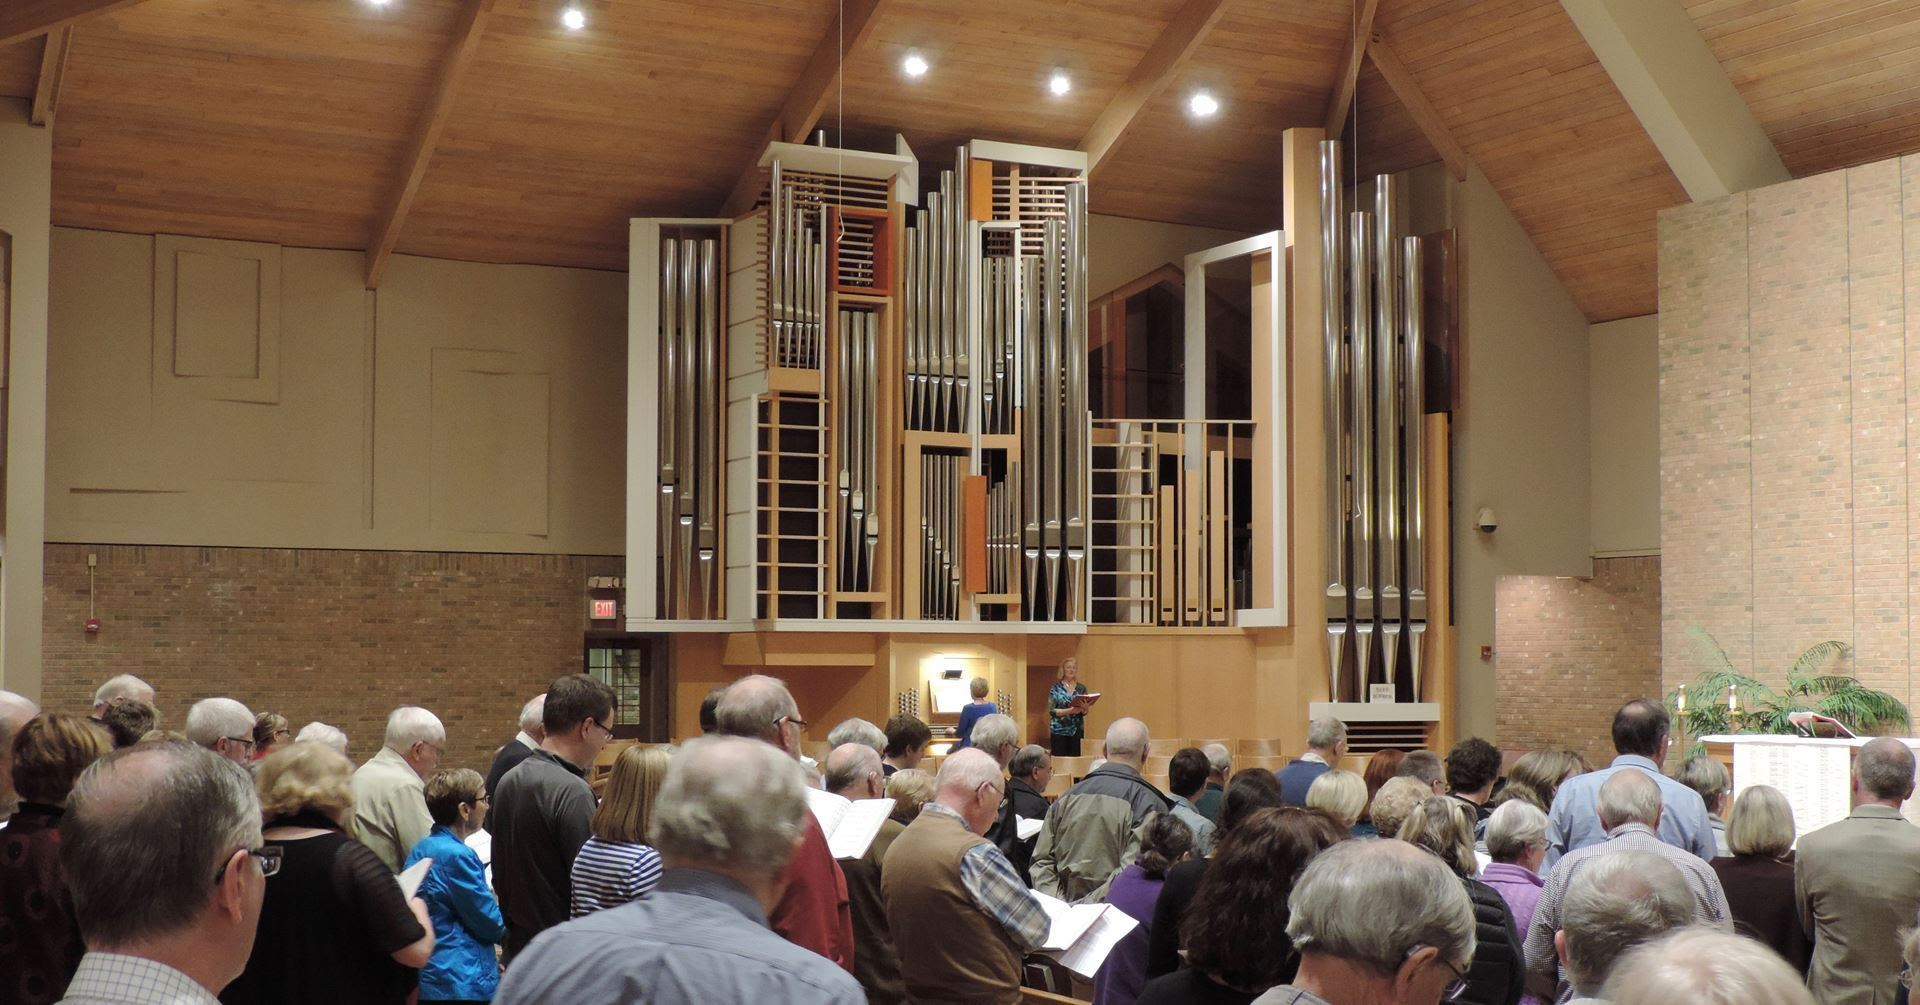 Twin Cities Chapter American Guild of Organists - Previous